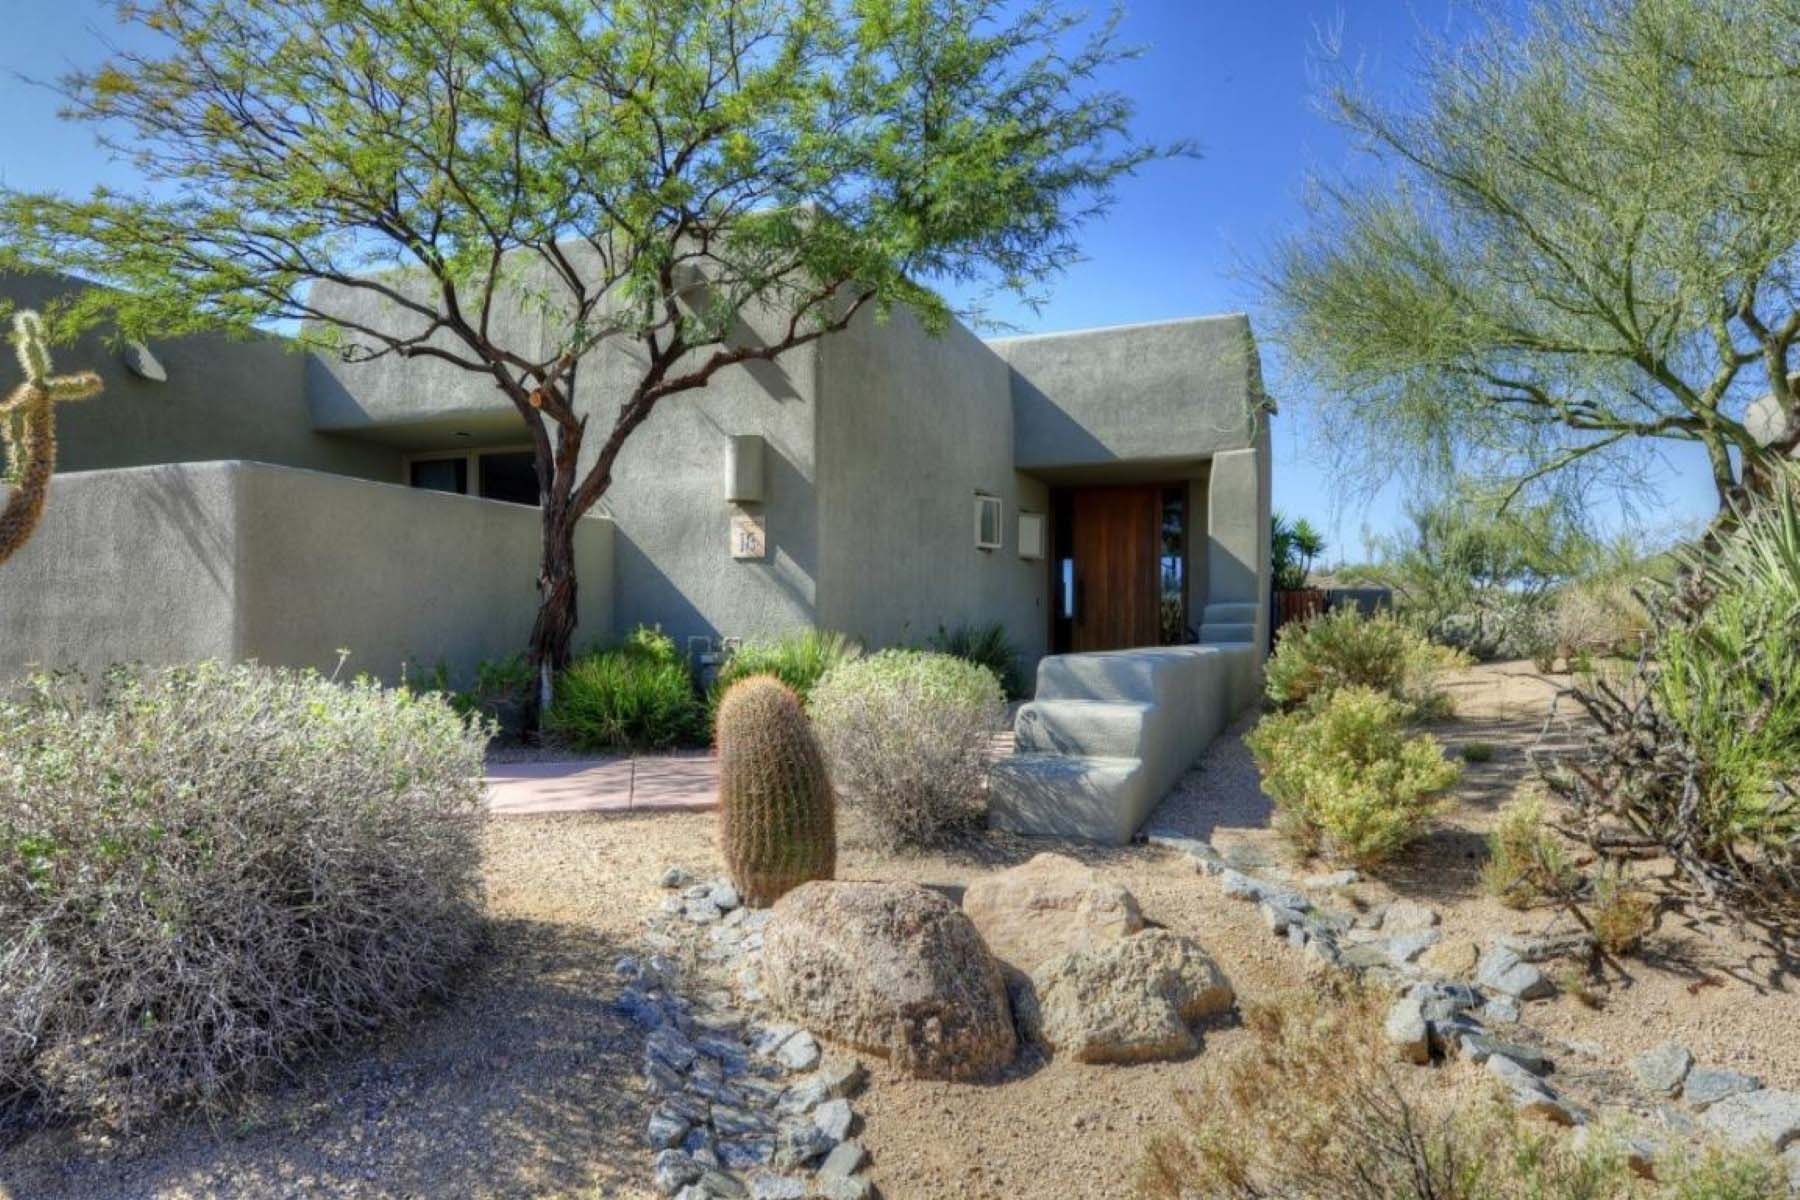 Casa Unifamiliar por un Venta en This cottage is in one of the most private settings in the Sonoran Cottages. 39260 N 100TH PL Scottsdale, Arizona 85262 Estados Unidos